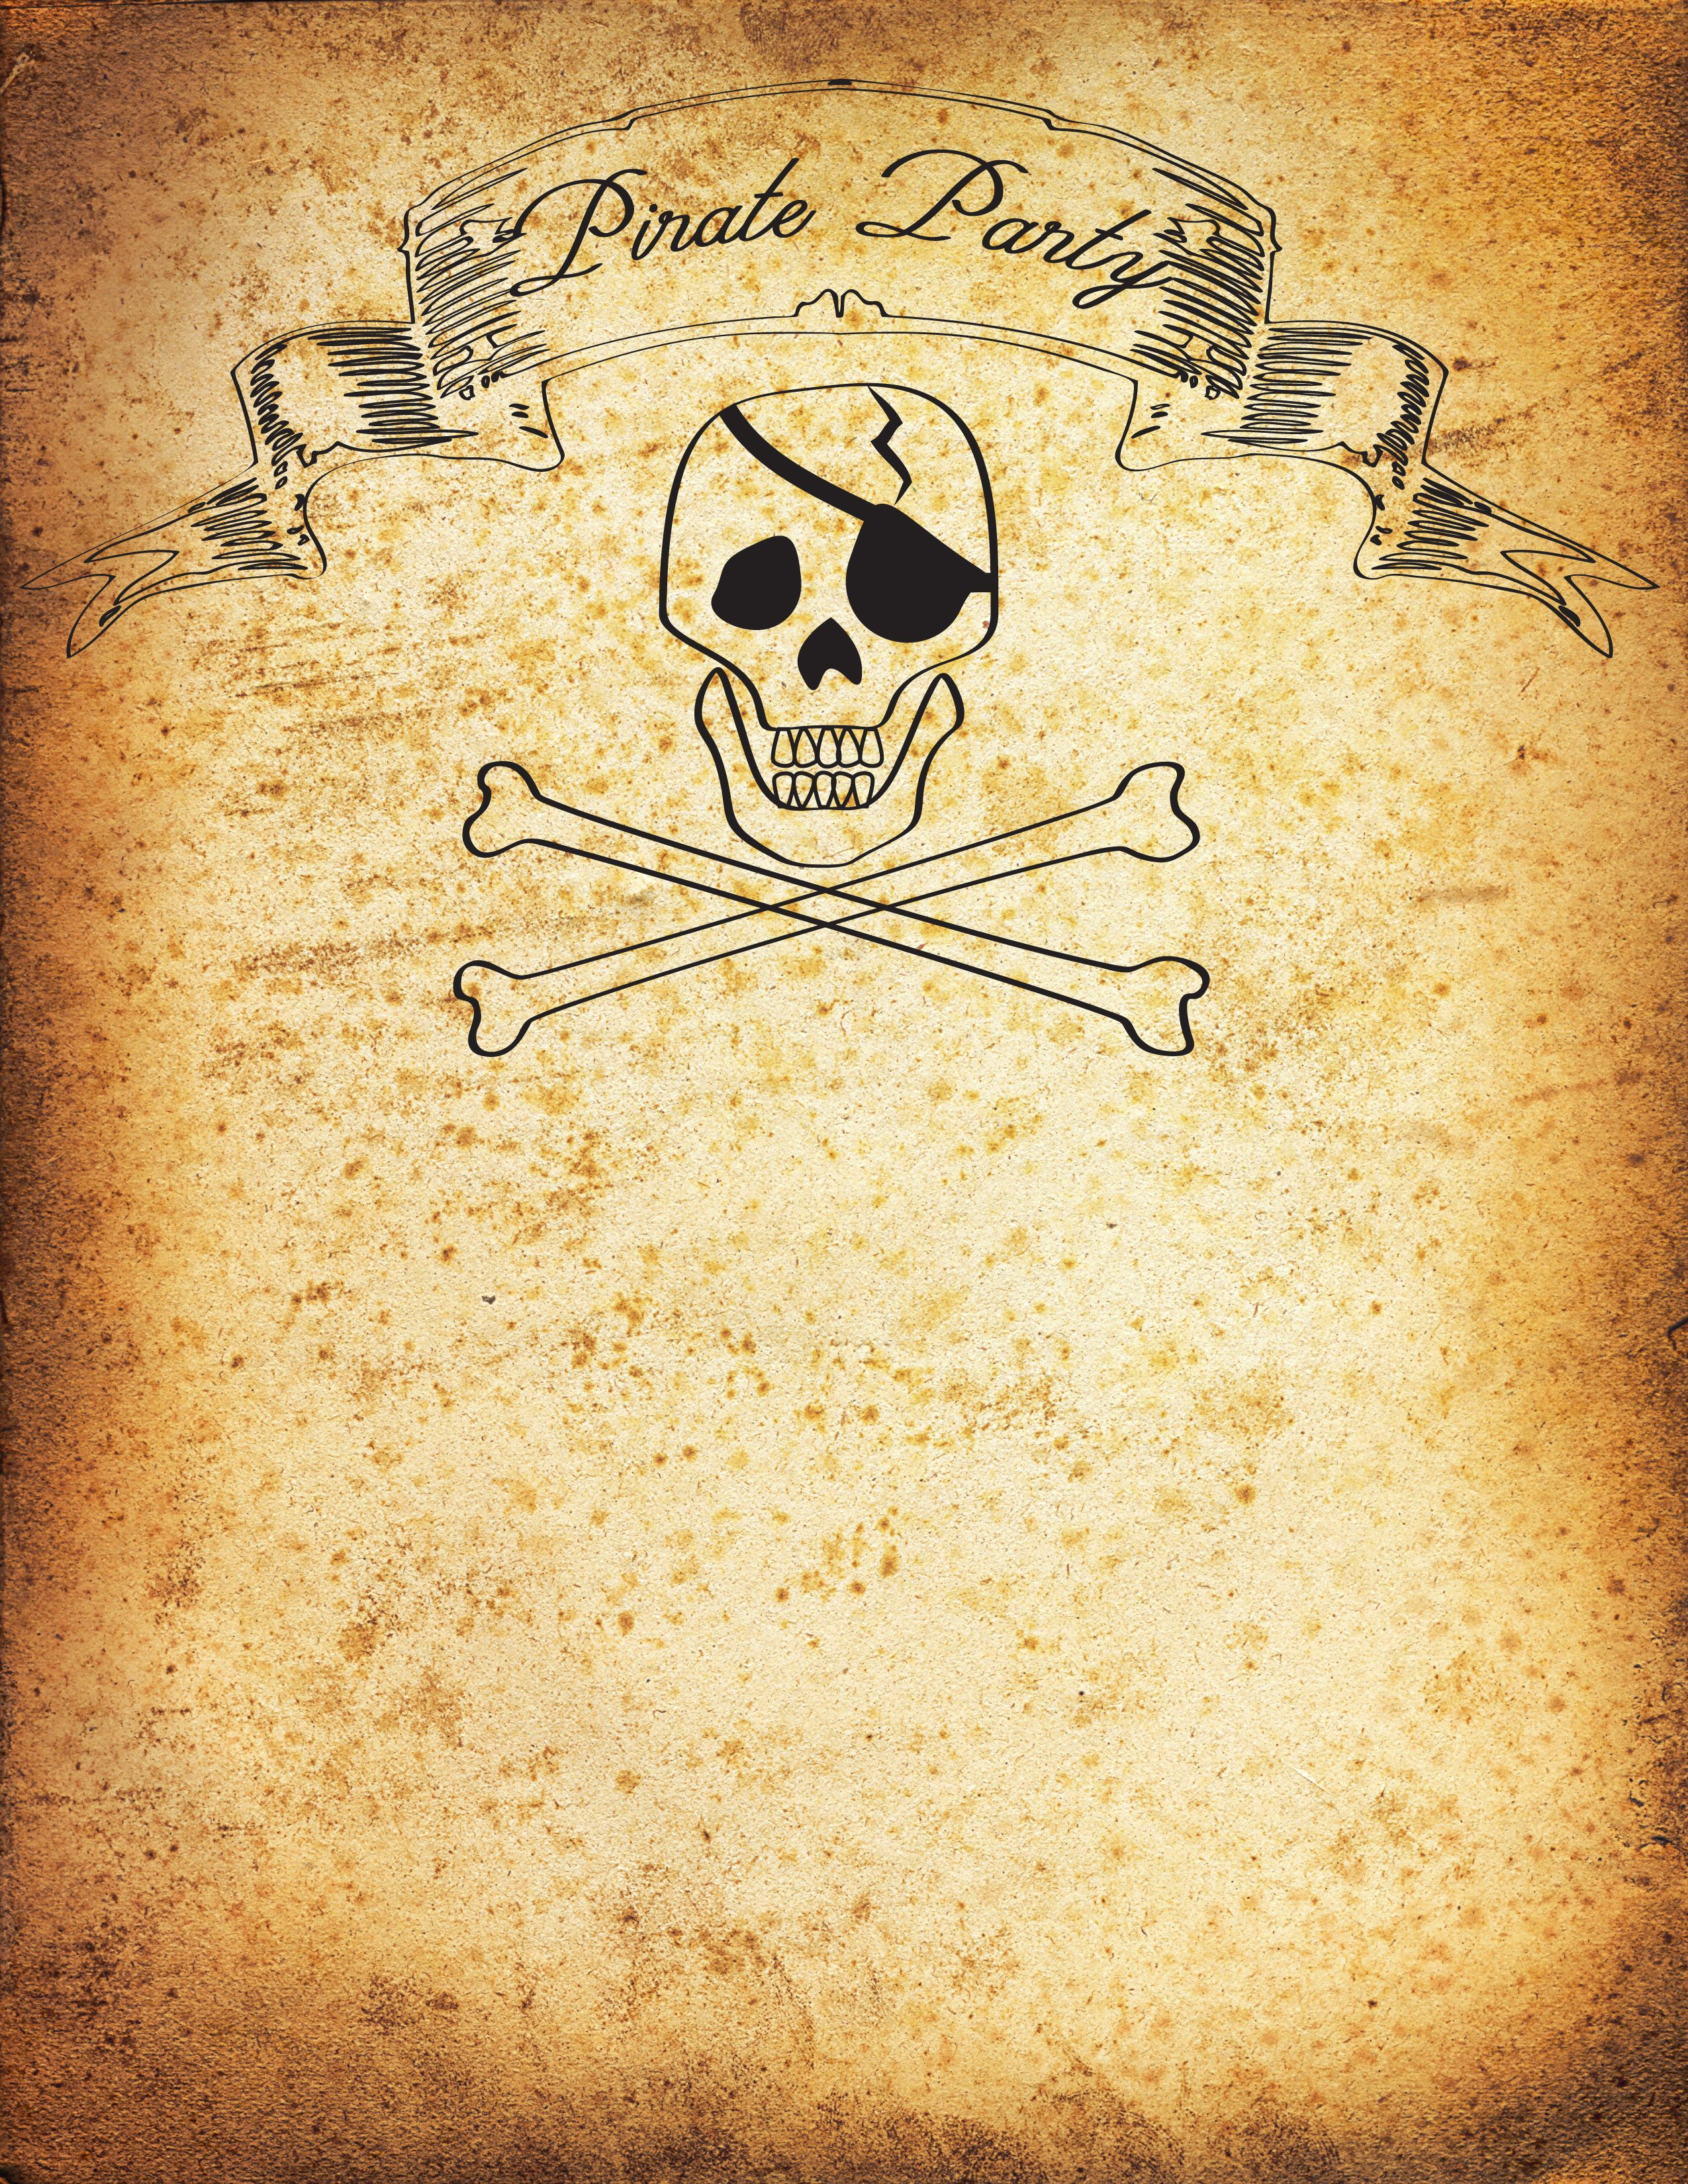 Free Pirate Party Invitation Printable Tutorial | Party invitations ...